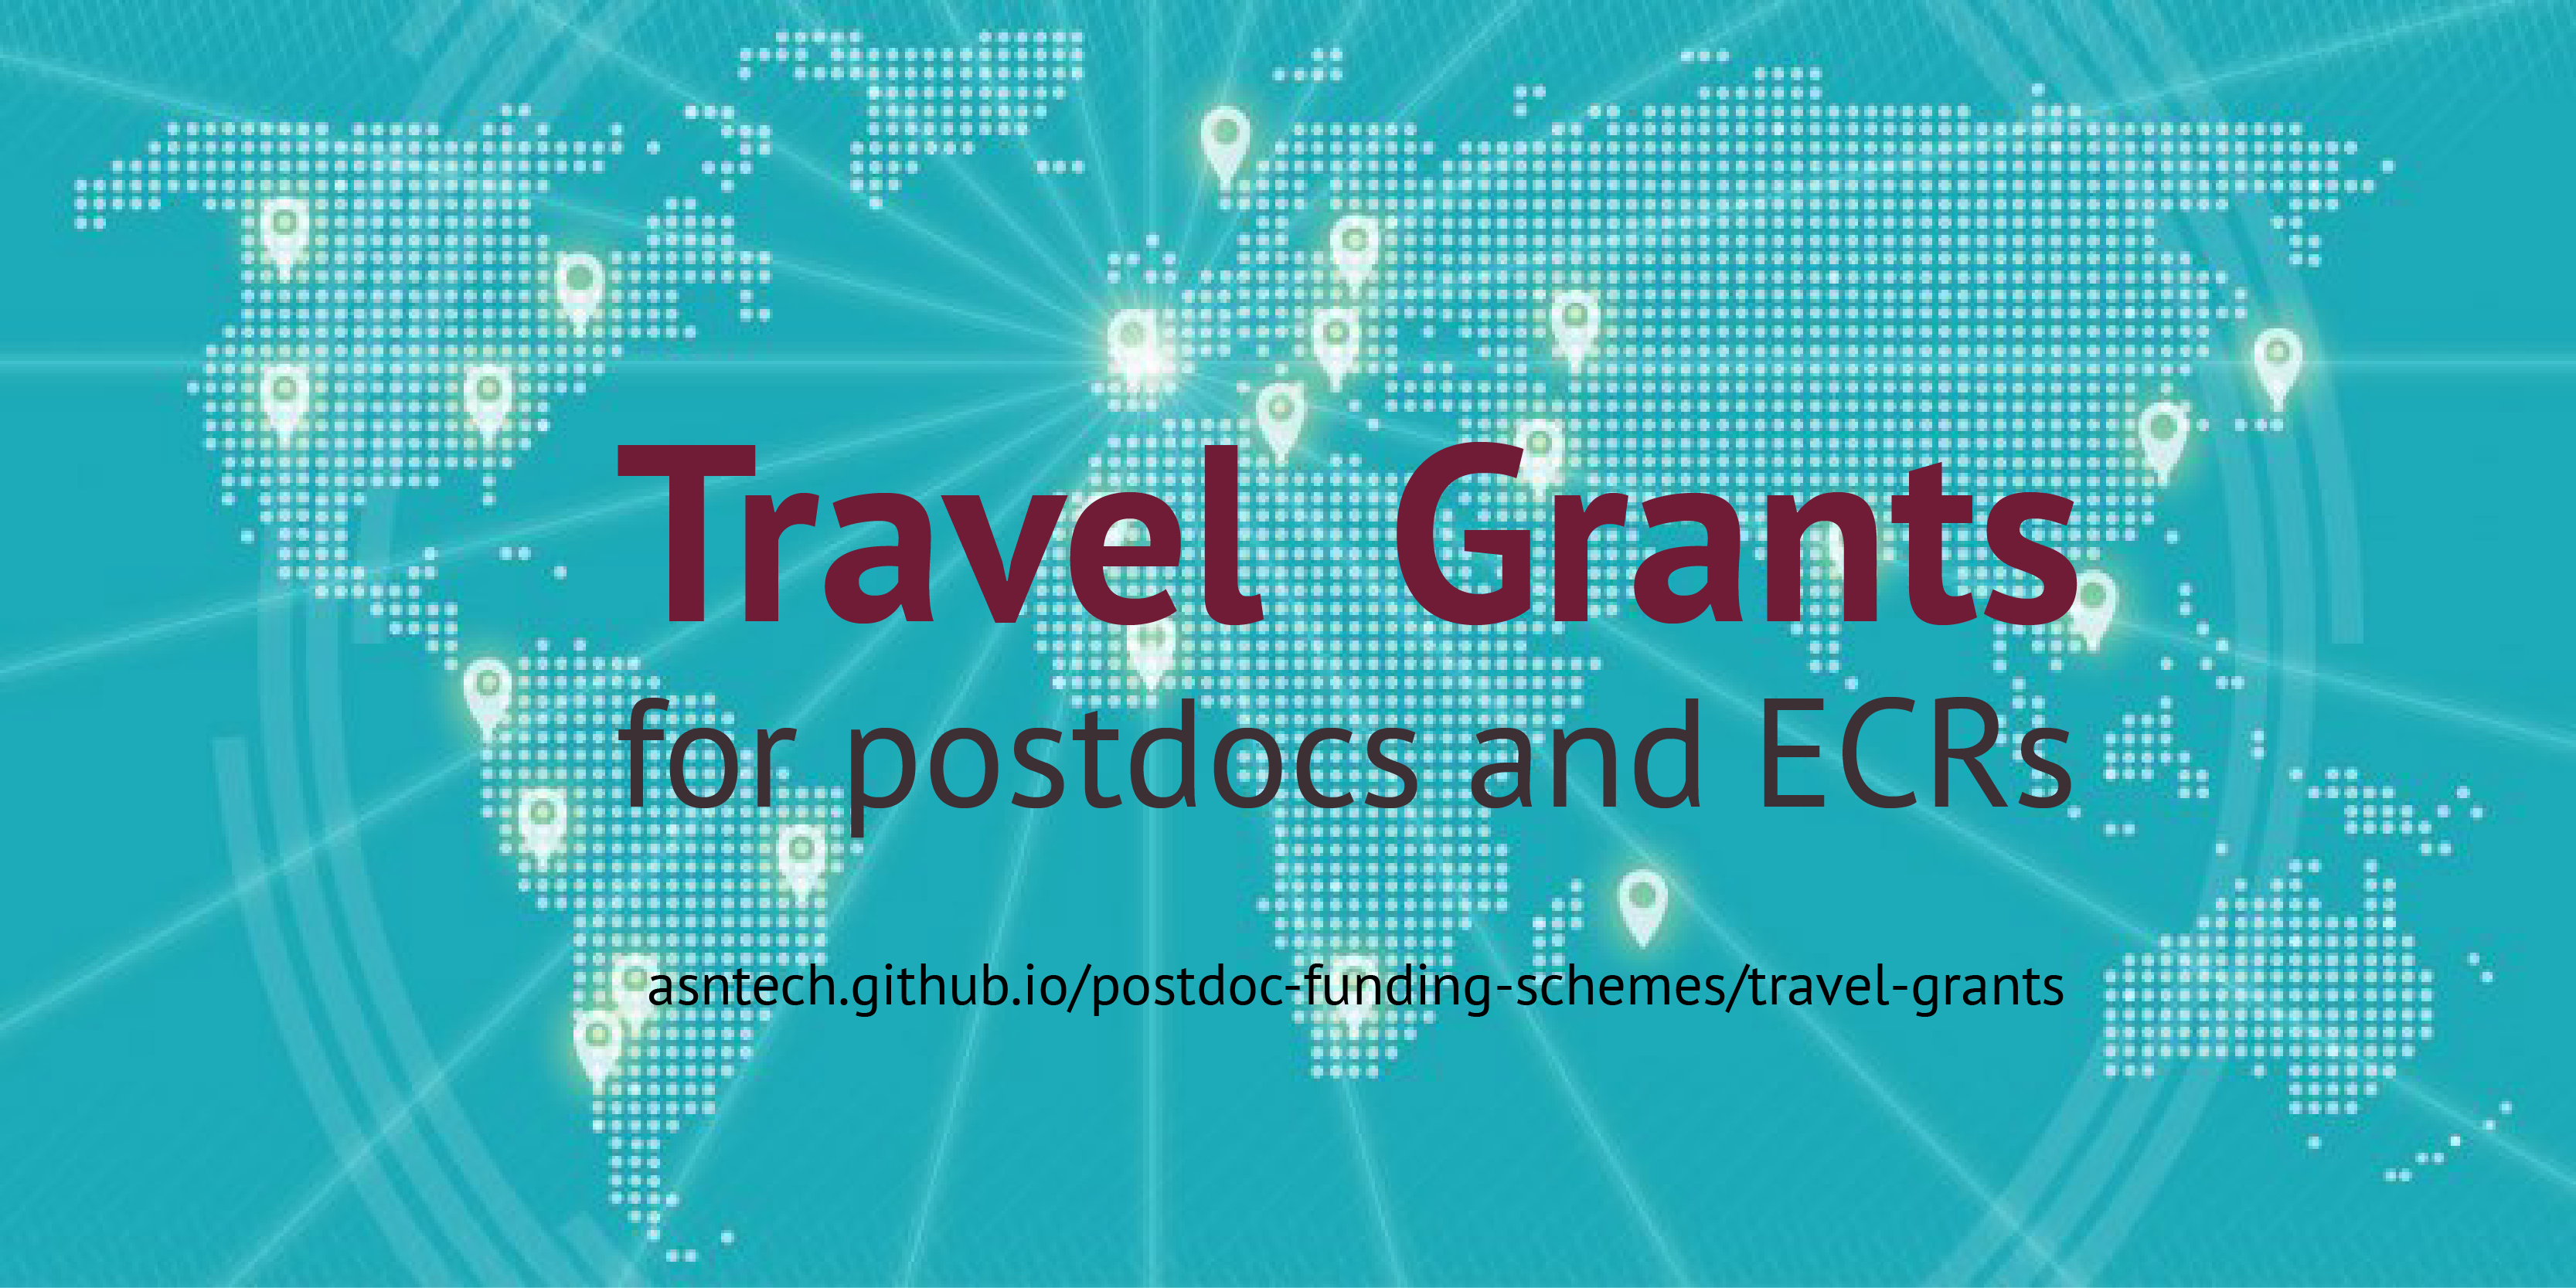 Travel funding opportunities for postdocs